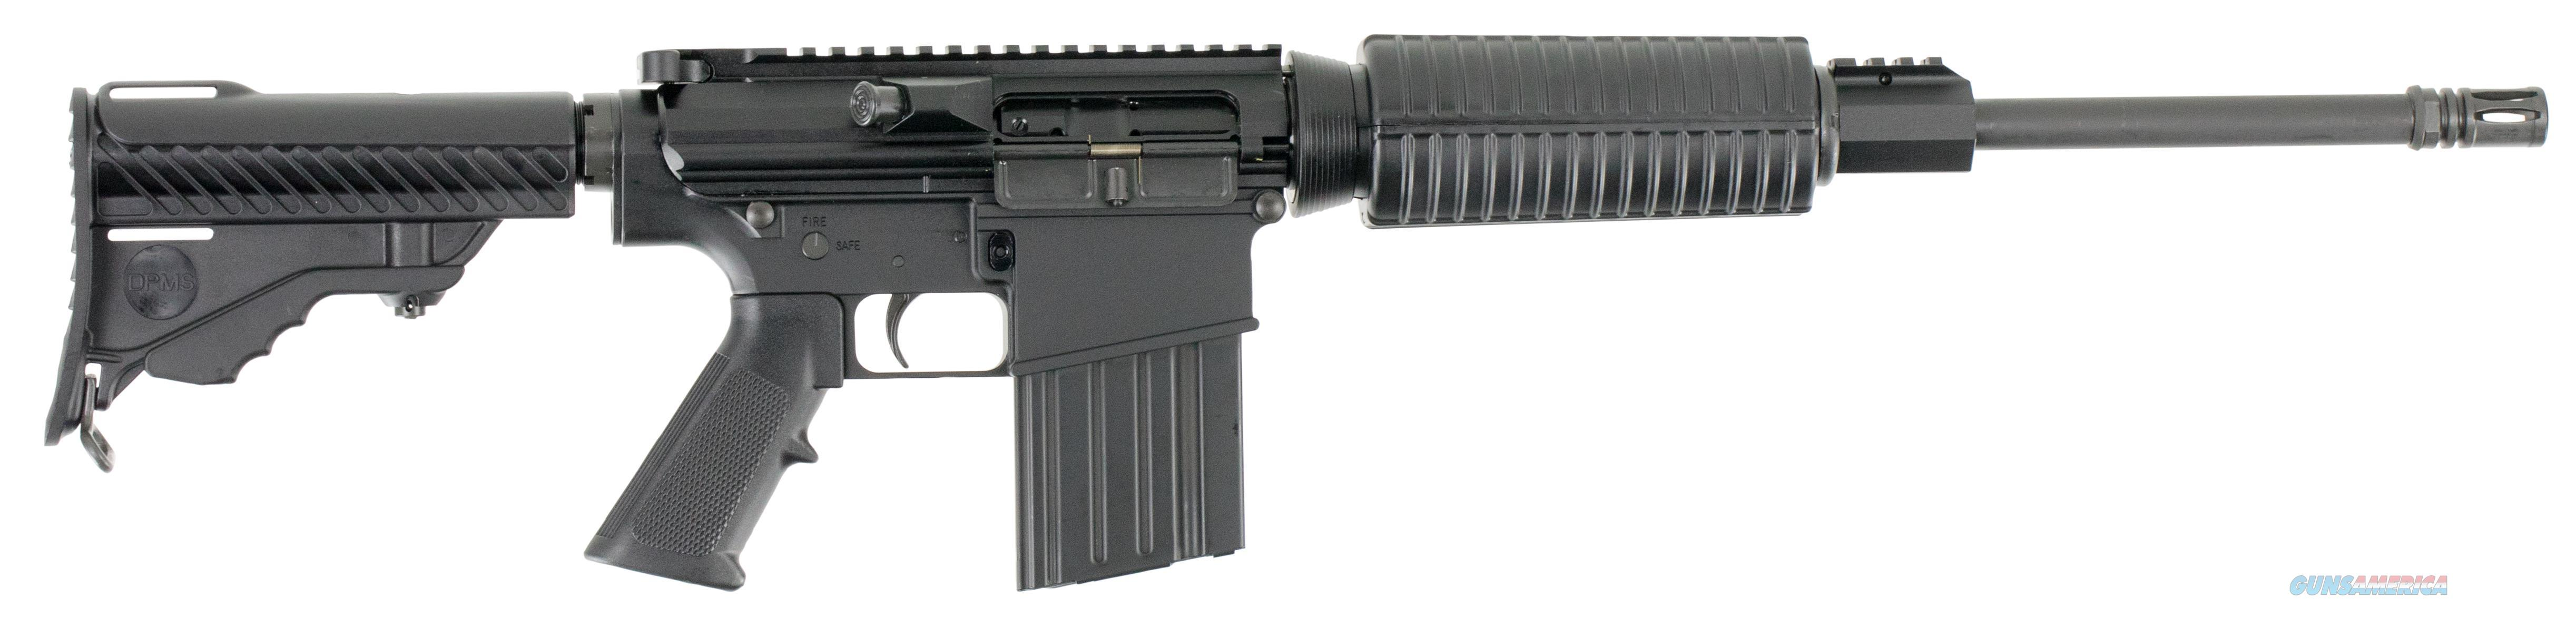 Dpms Panther 308Win Oracle 60560  Guns > Rifles > D Misc Rifles